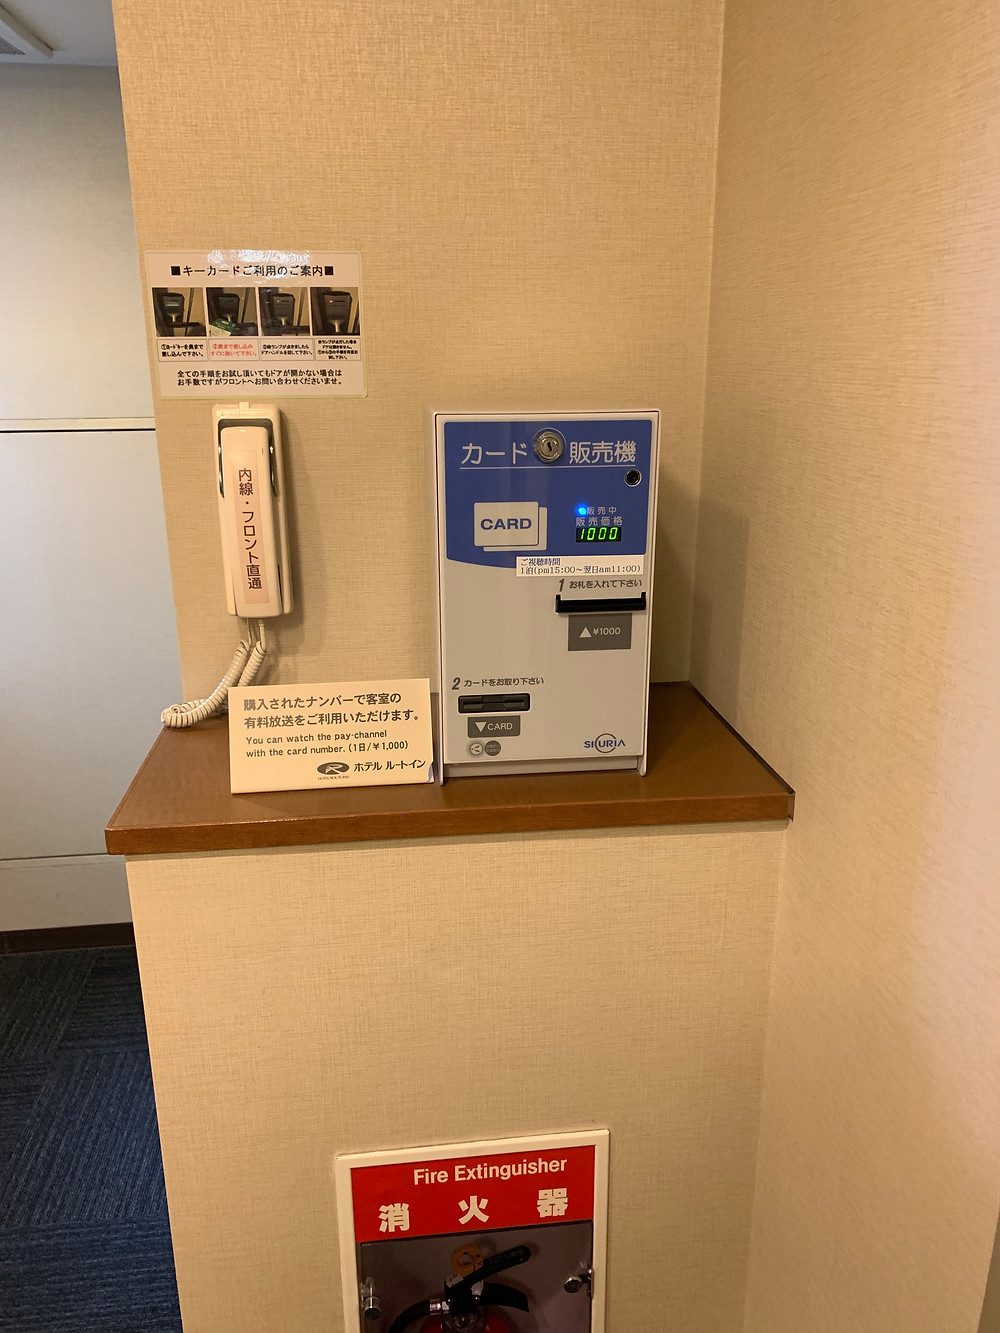 Vending machine for pay TV card